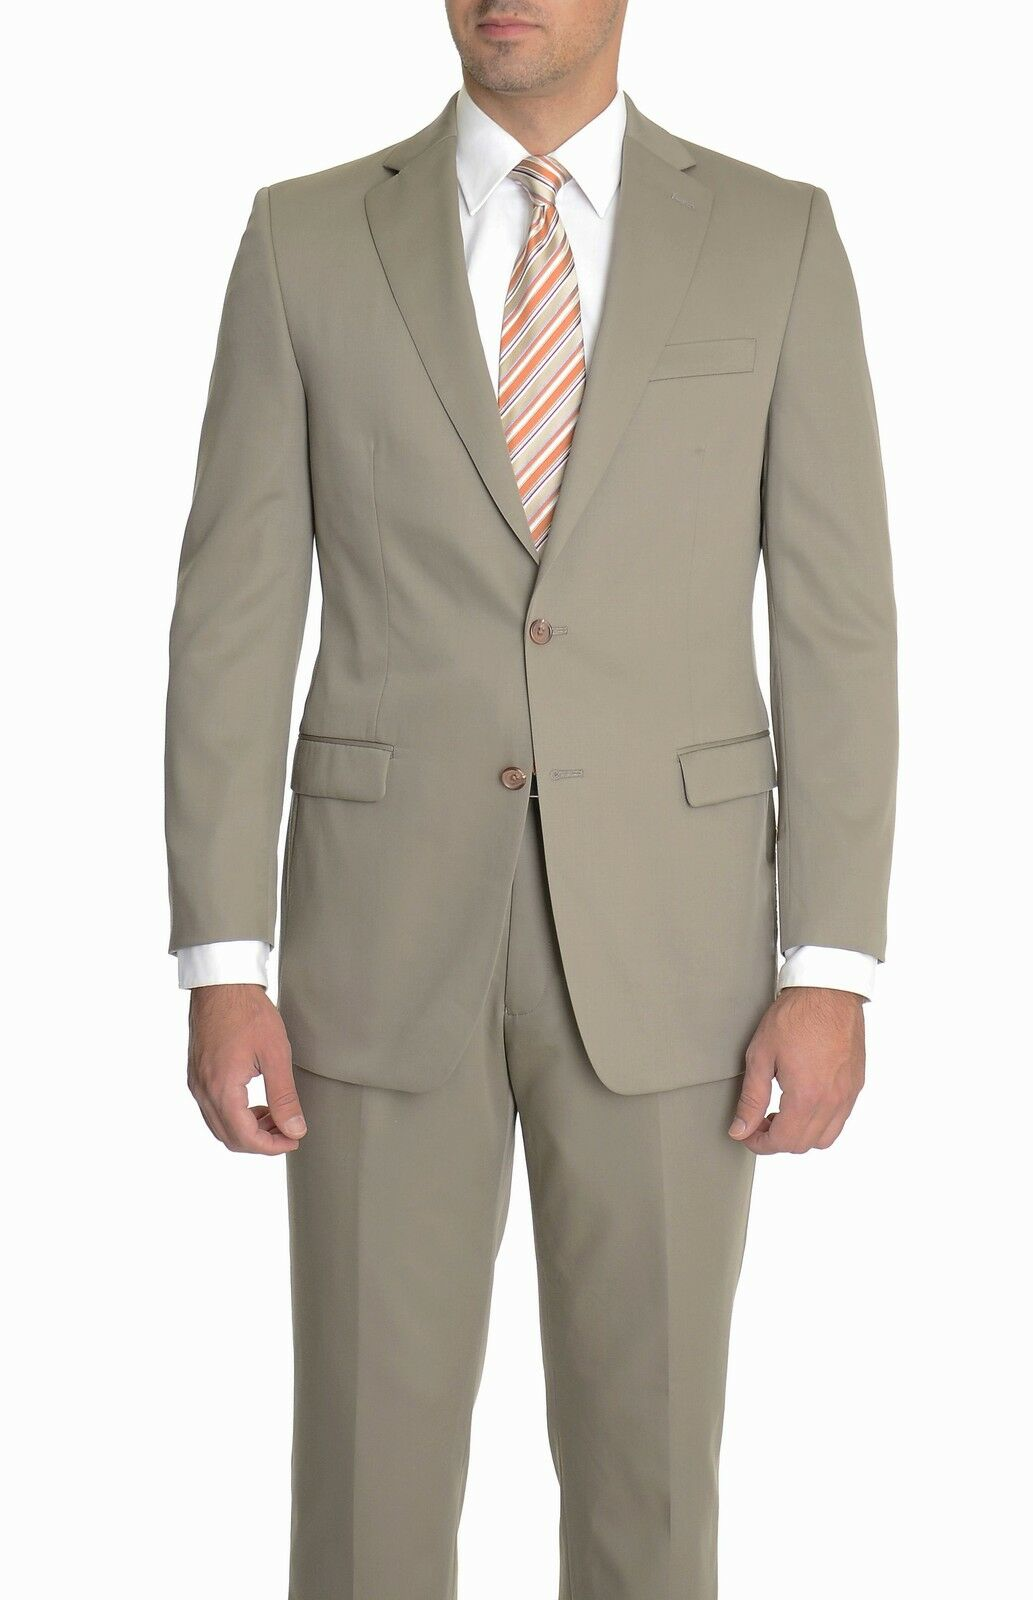 Ralph Lauren Classic Fit Solid Taupe Two Button Wool Suit With Pleated Pants